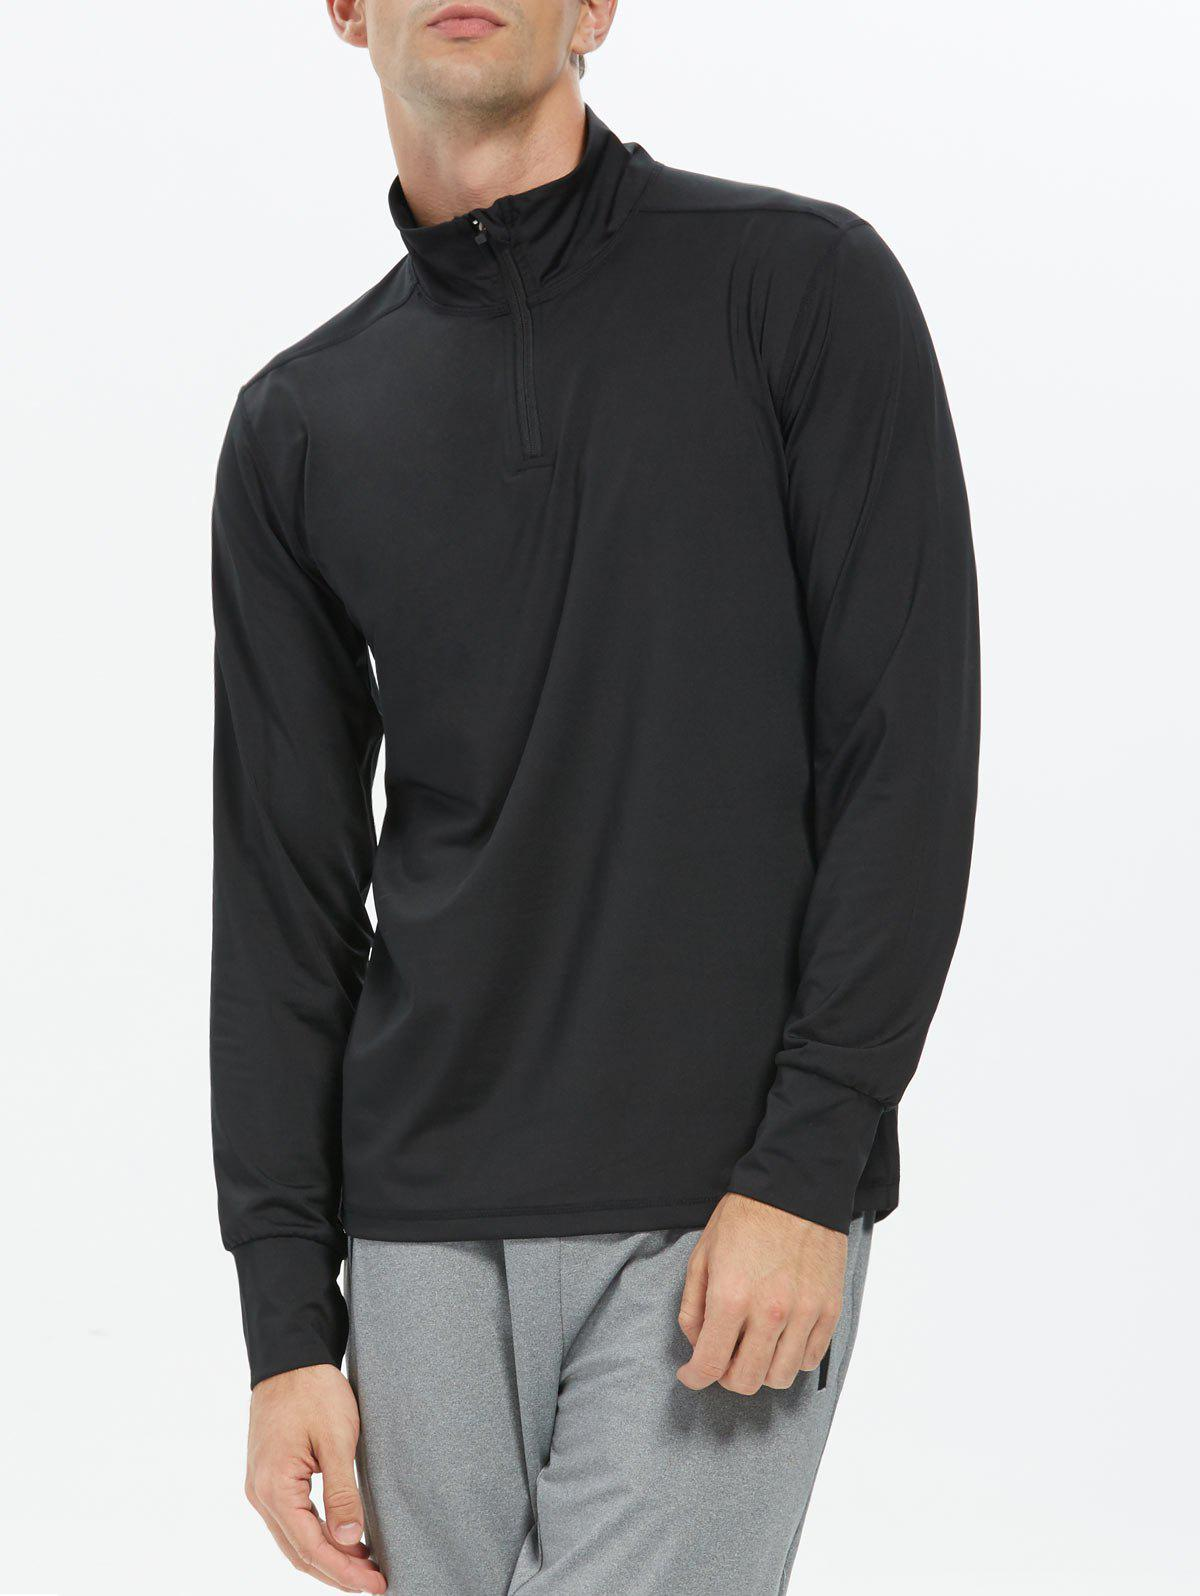 Half Zip Stand Collar Long Sleeve Top - BLACK M